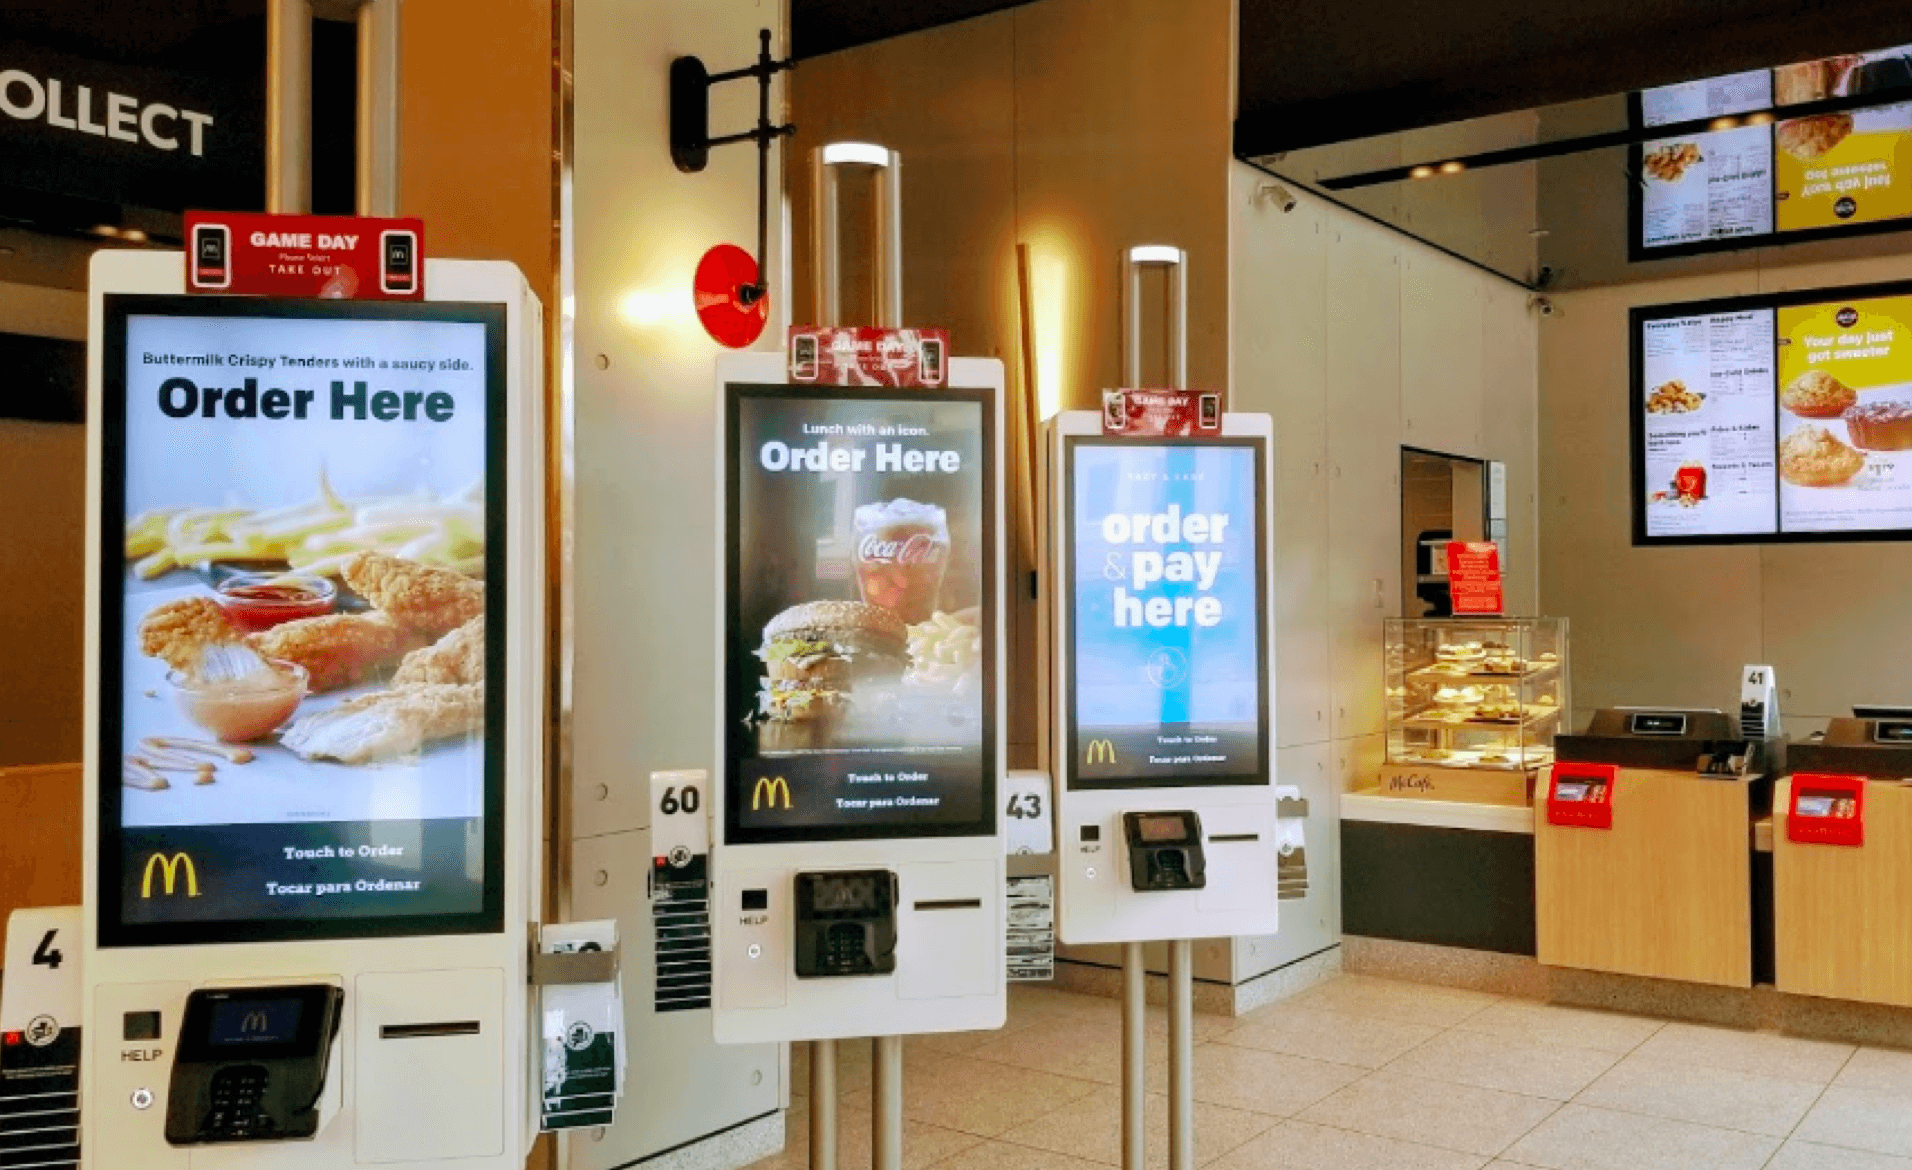 McDonald's - The McDonald's located inside Hotel Zachary offers a new level of choice, engagement and service featuring digital self-order kiosks, table service, mobile order and payment, as well as McDelivery via Uber Eats.3610 N Clark StreetChicago, IL 60613